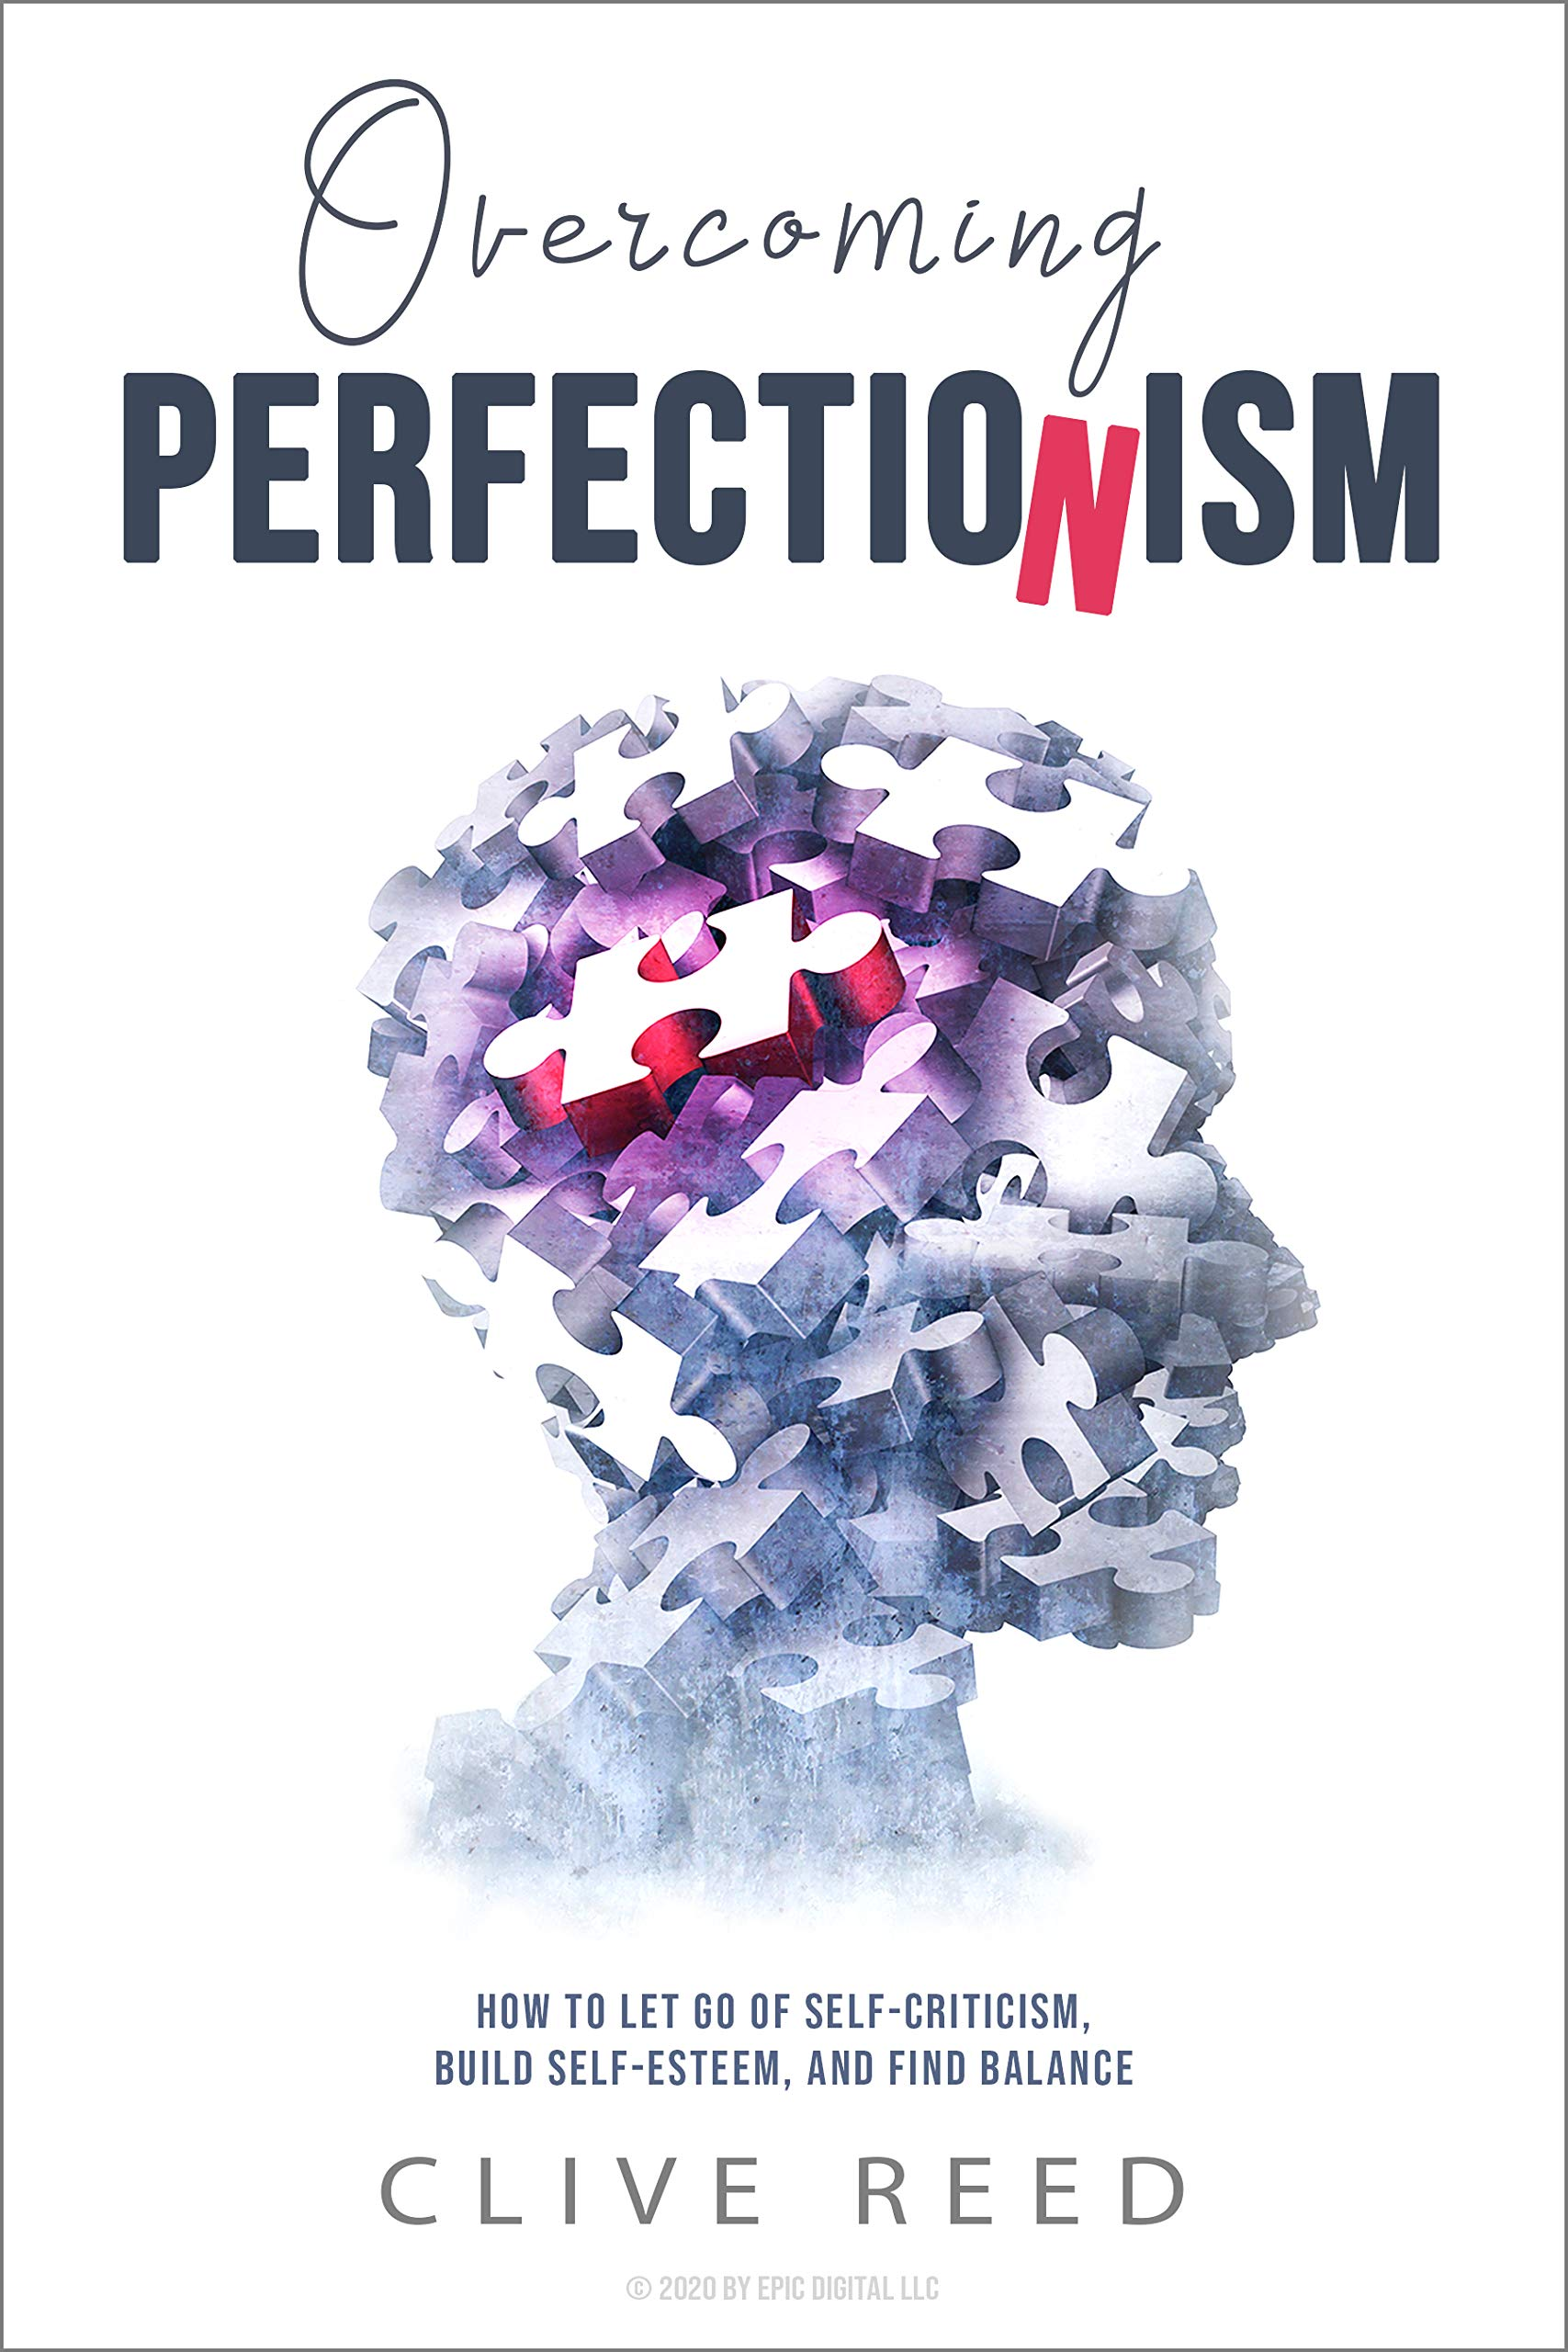 Image OfOvercoming Perfectionism: How To Let Go Of Self-Criticism, Build Self-Esteem, And Find Balance